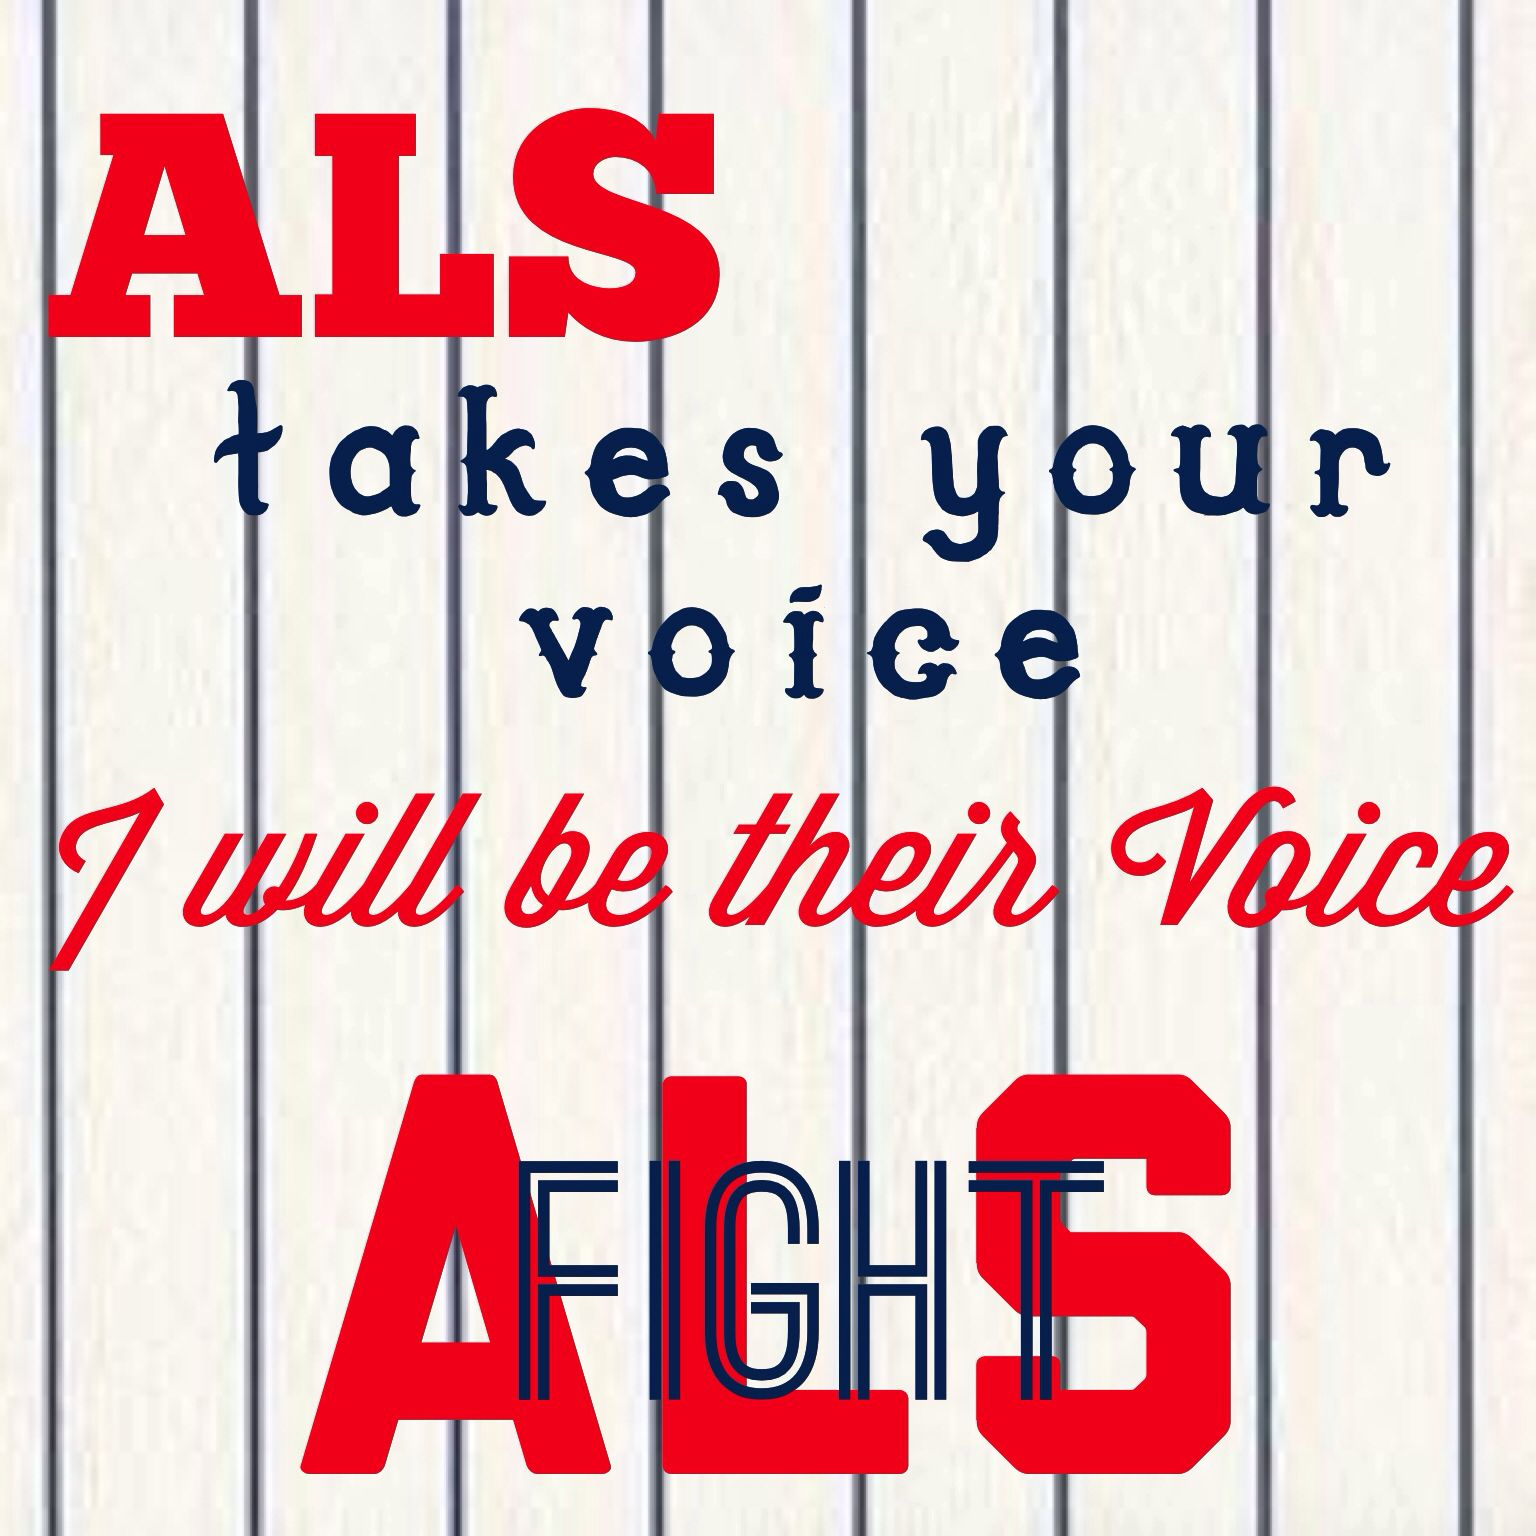 Fight ALS  A cure needs to be found SOON! I'm grateful for the